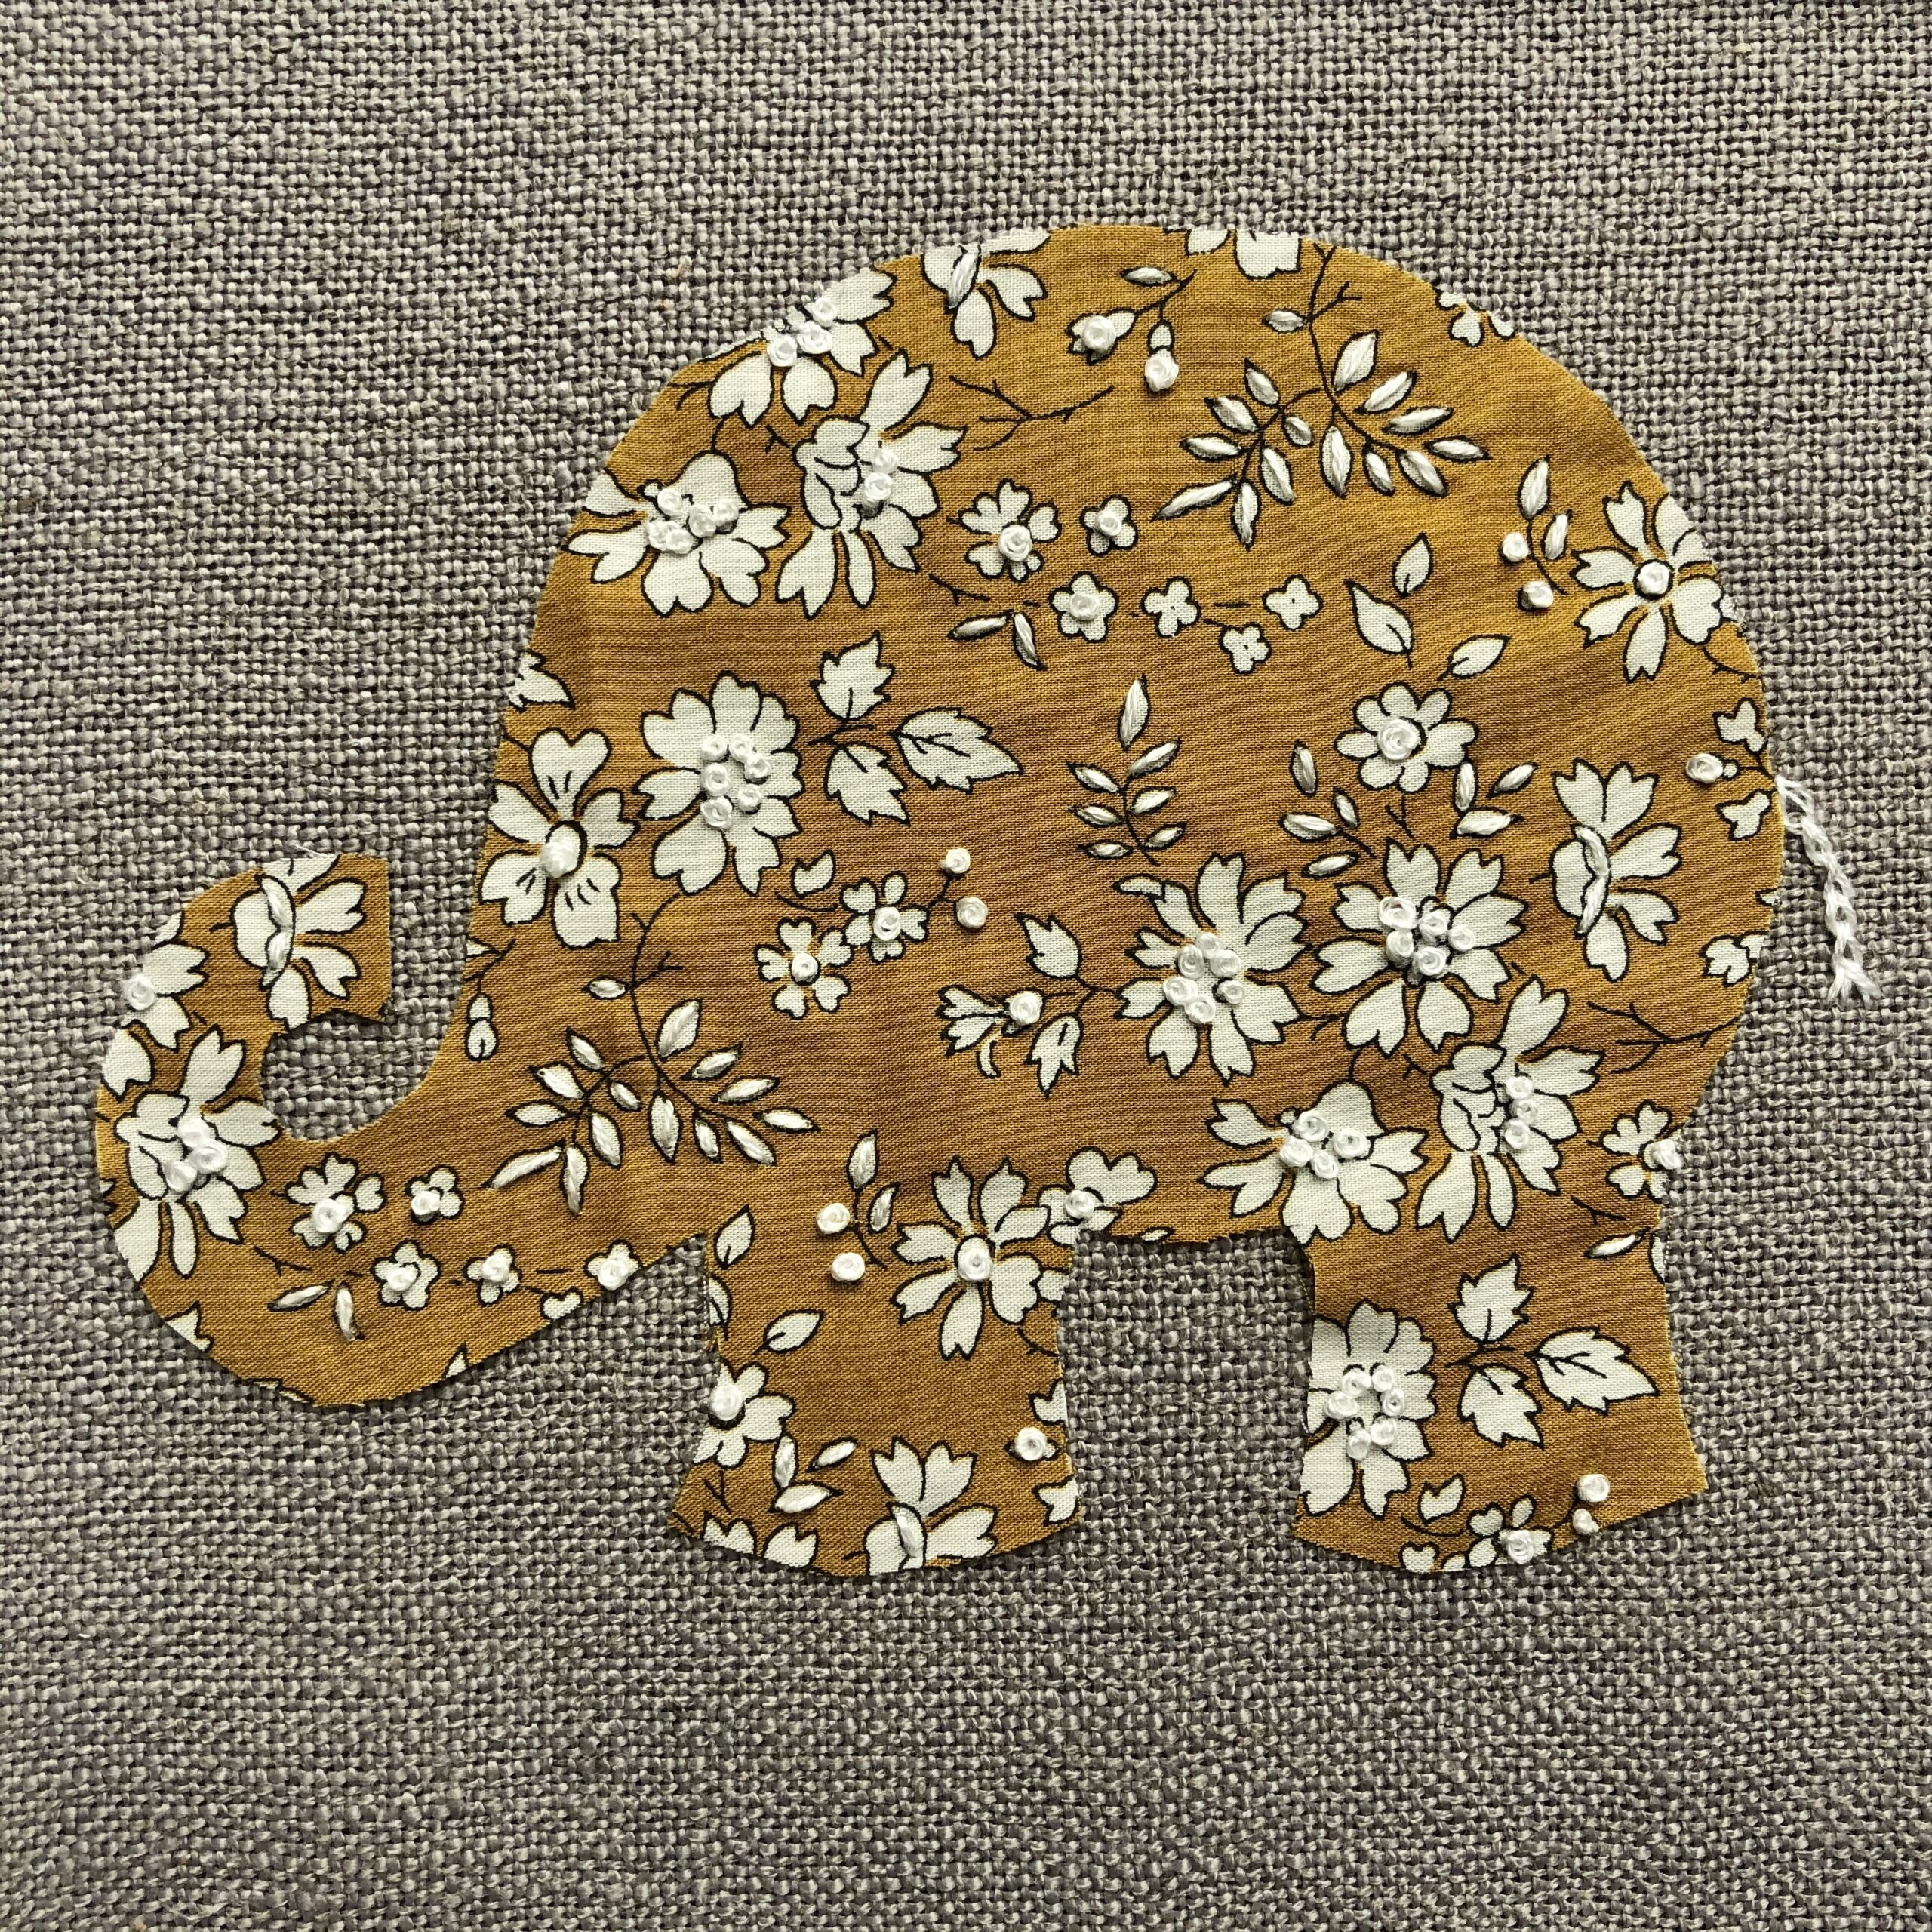 Close up of Liberty of London Elephant embroidered art